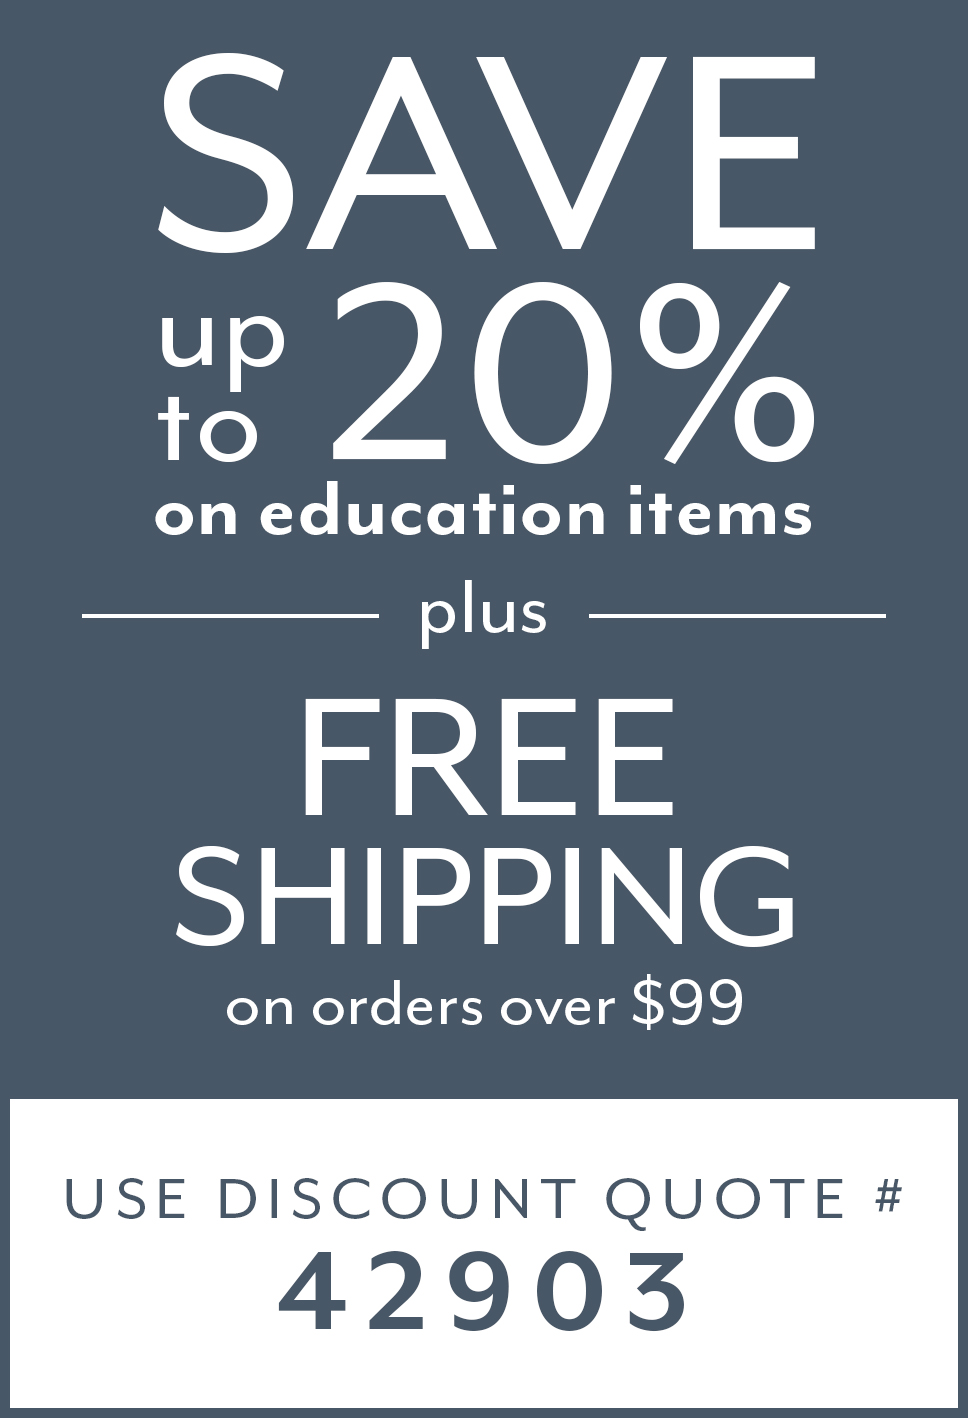 We Are So Much More - Save Up To 20% on Education Items Plus Free Shipping on Orders over $99